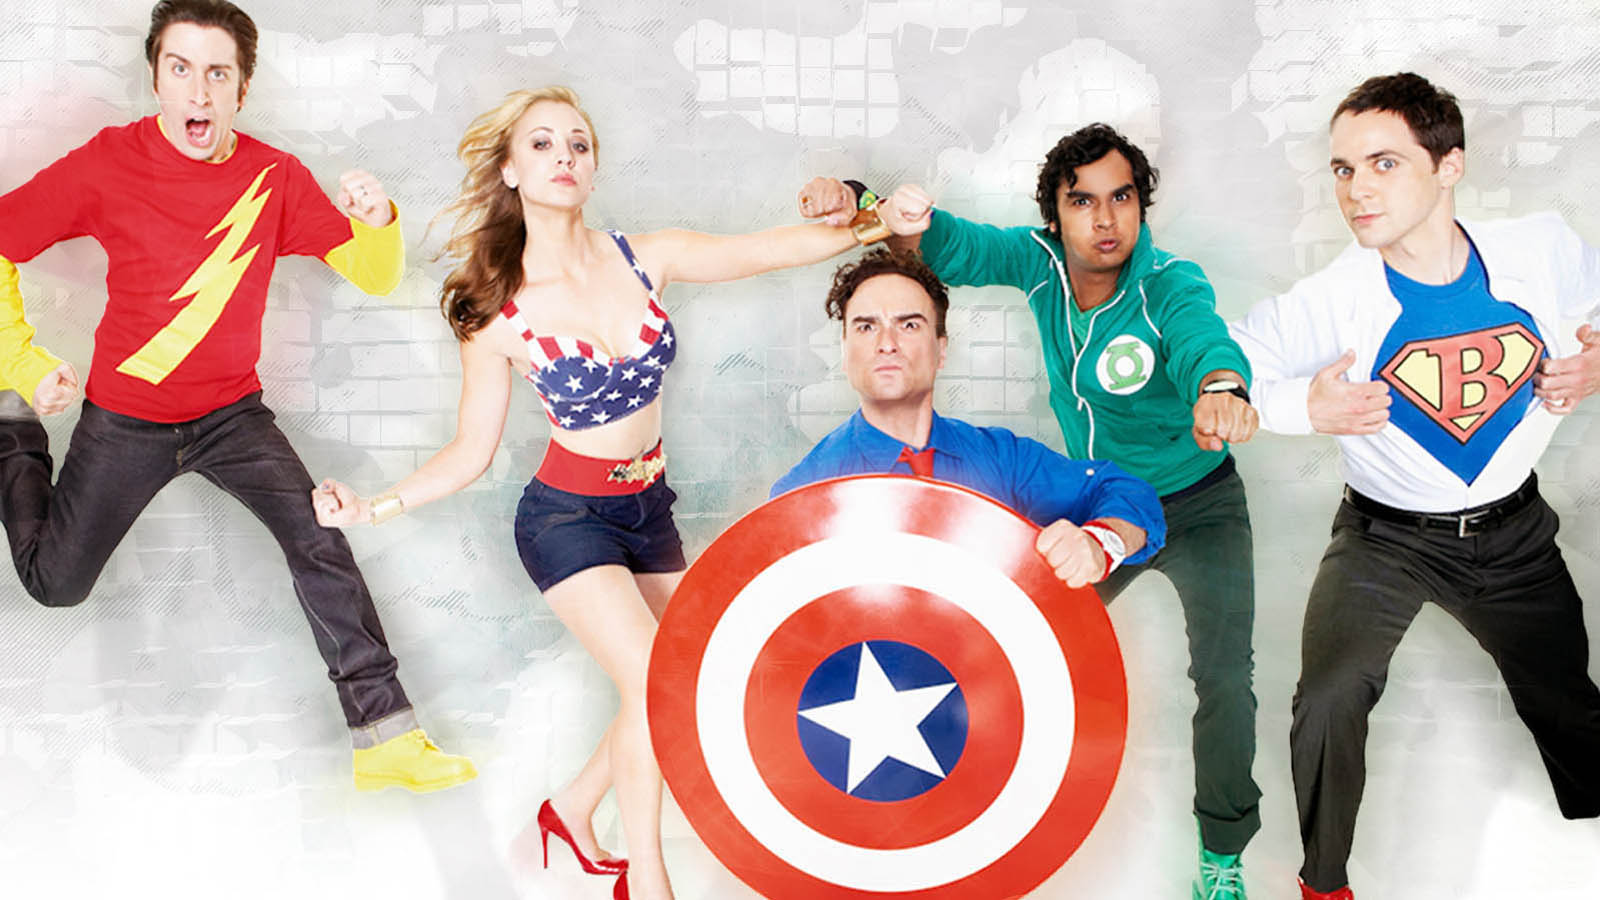 the big bang theory wallpaper and background image | 1600x900 | id